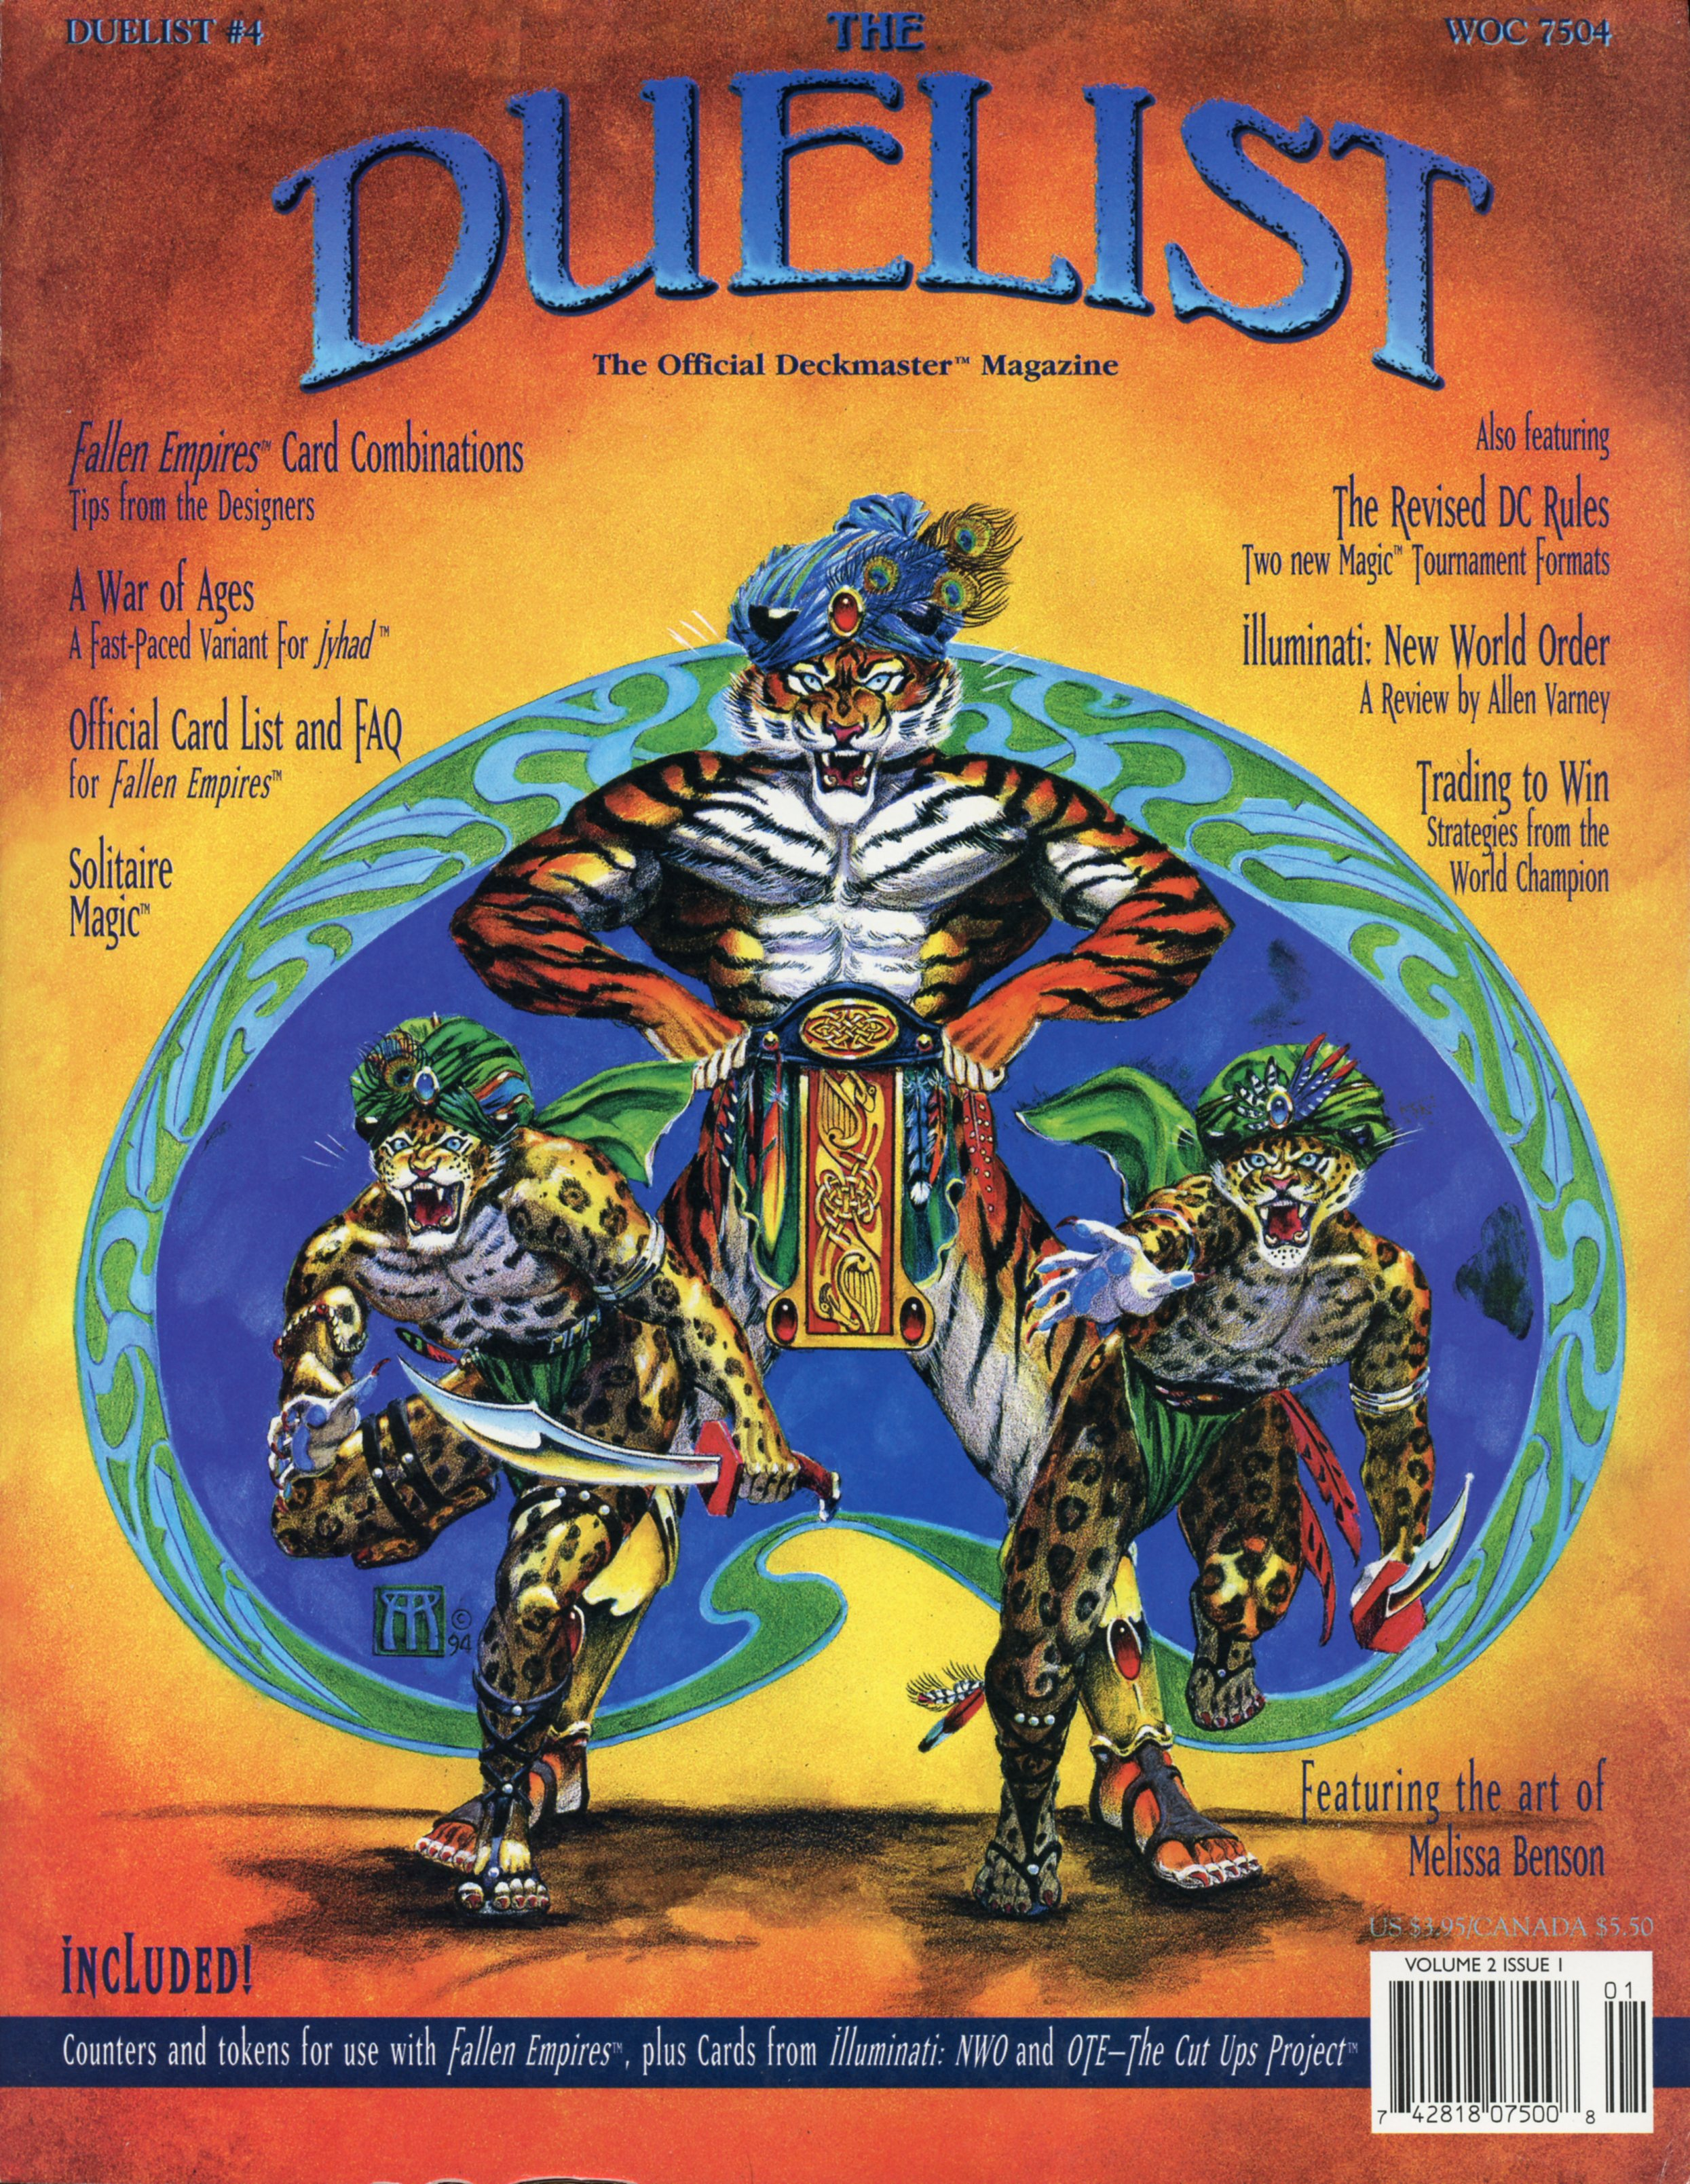 The Duelist #4, March 1995